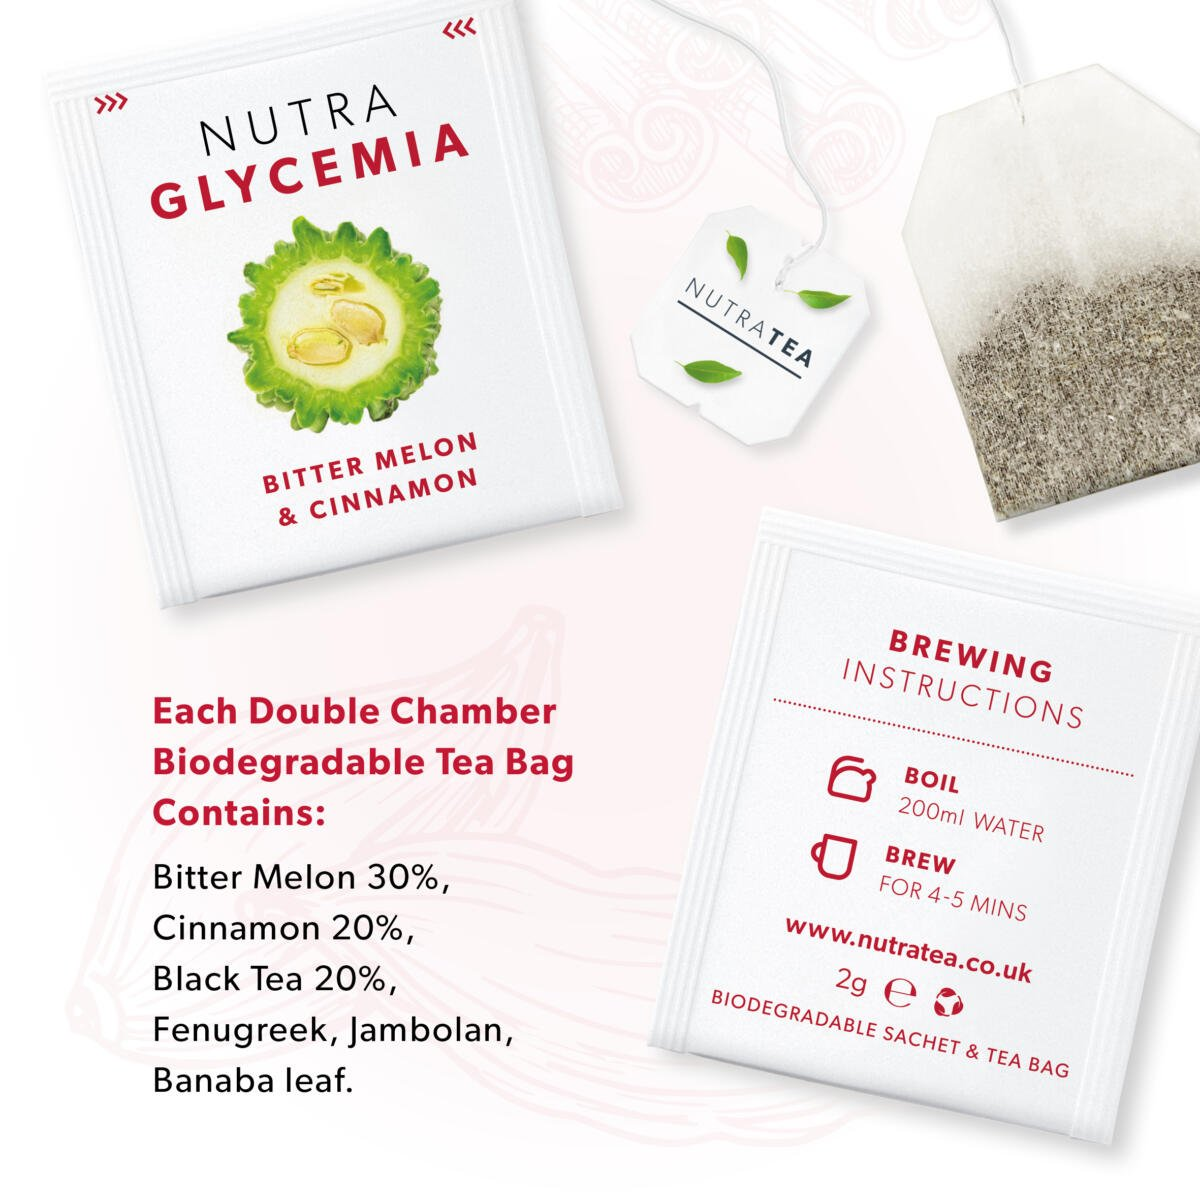 GLYCEMIA_SUPPORT_PAGES5